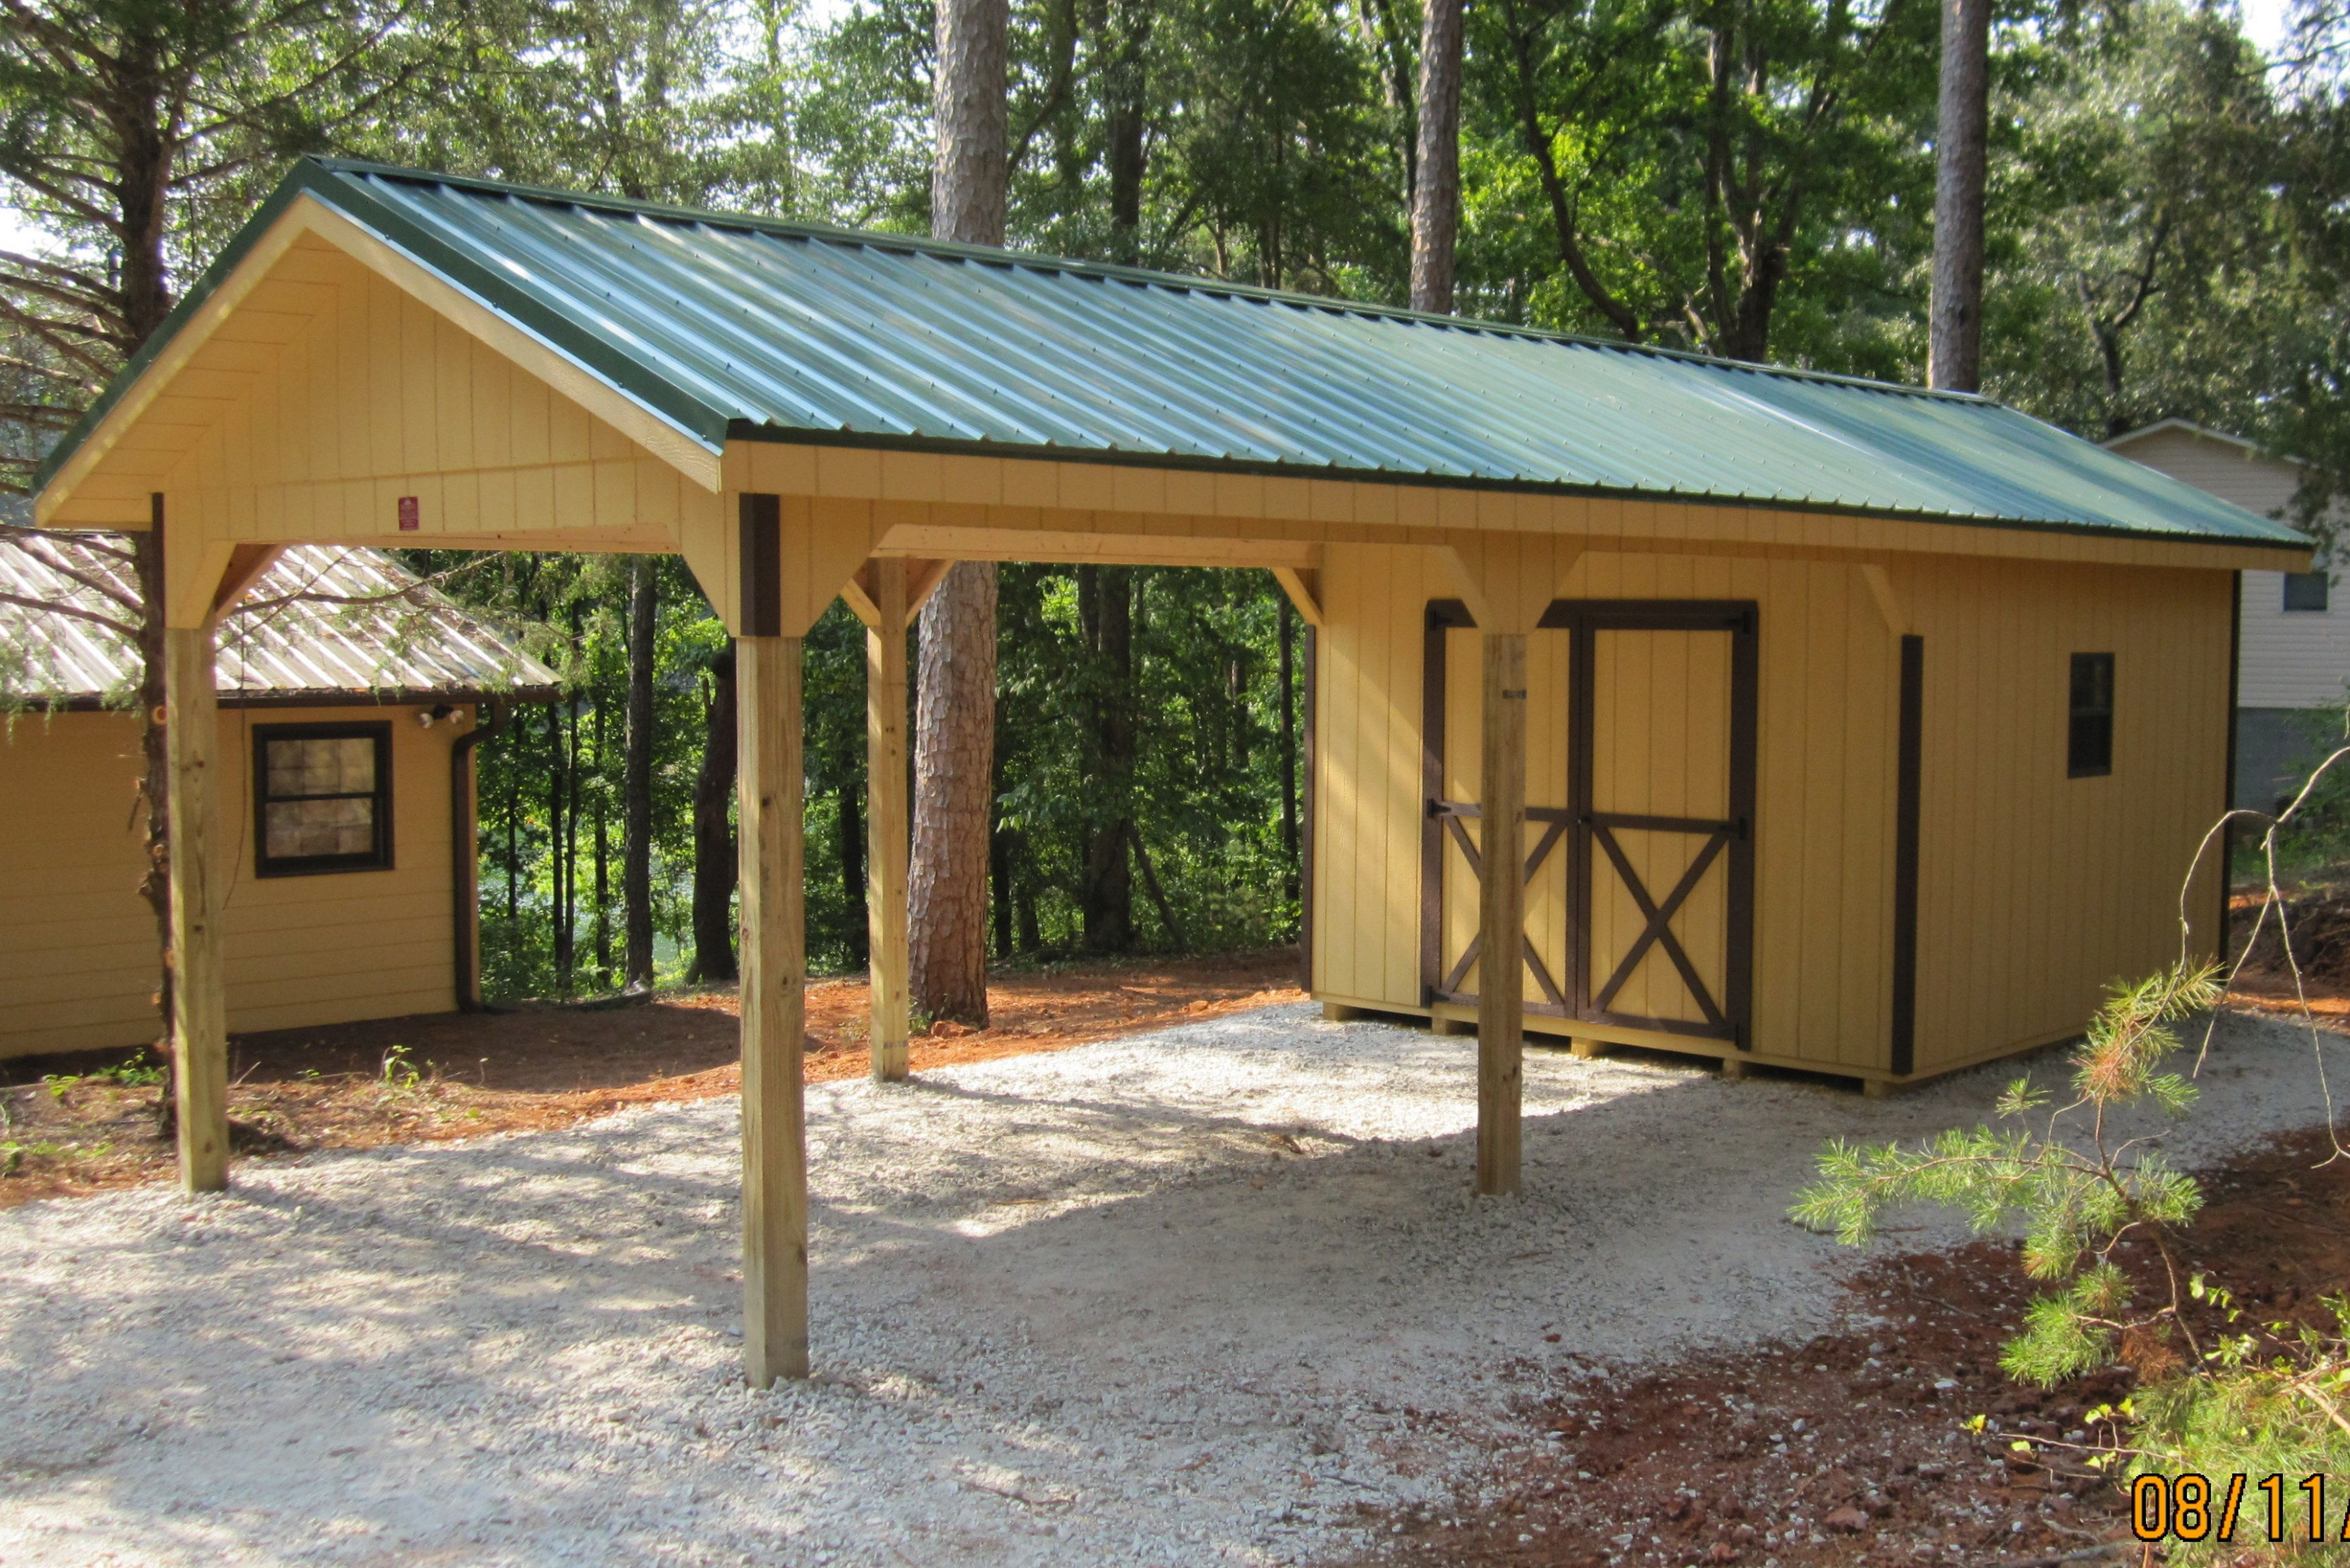 Storage Sheds | Storage and Garden Sheds – Woodtex ...